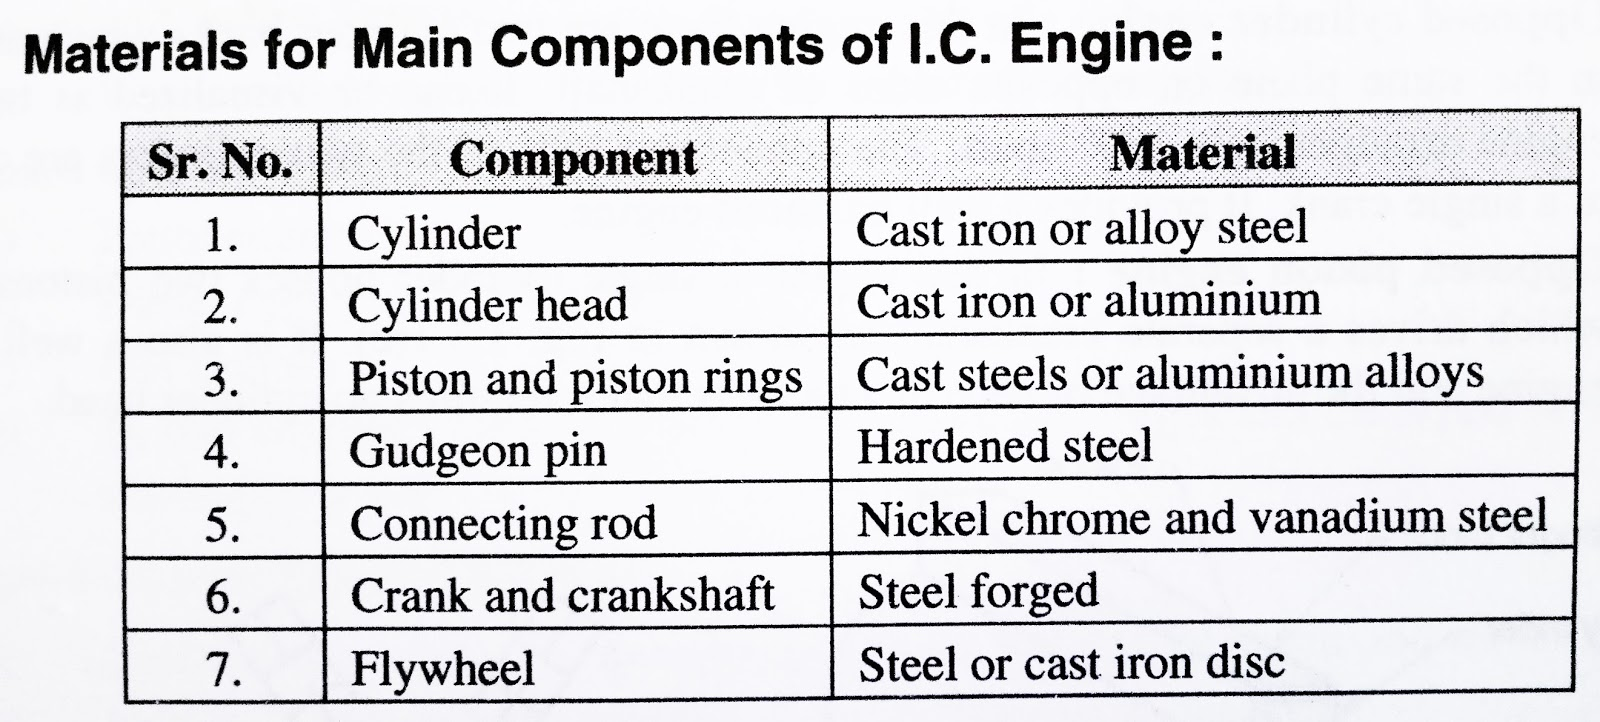 material used in engine block casting essay The casting process for aluminum could be problematic, as pores in the cooled metal could cause terminal failure in one casting pour while the next pour might exhibit good durability engine materials eventually shifted from steel to the aluminum components in general use today.